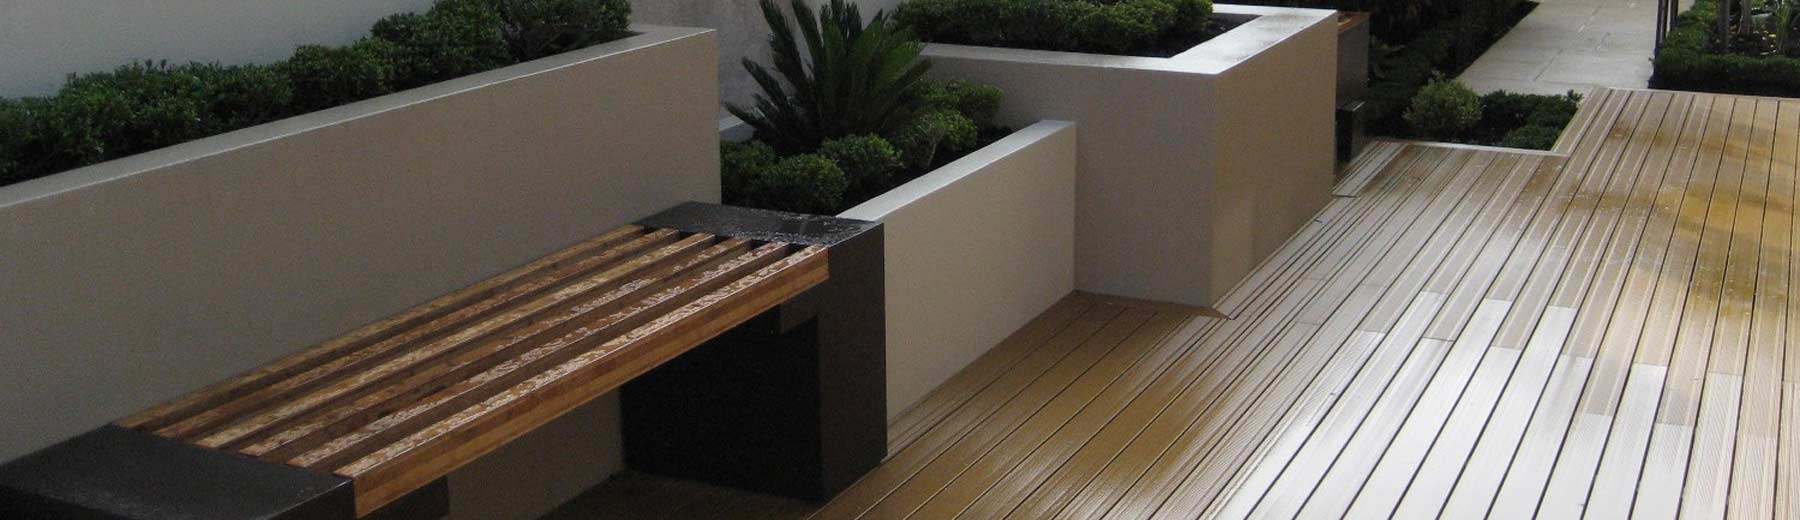 Decking Perth Outdoor Timber Decks Deck Builders